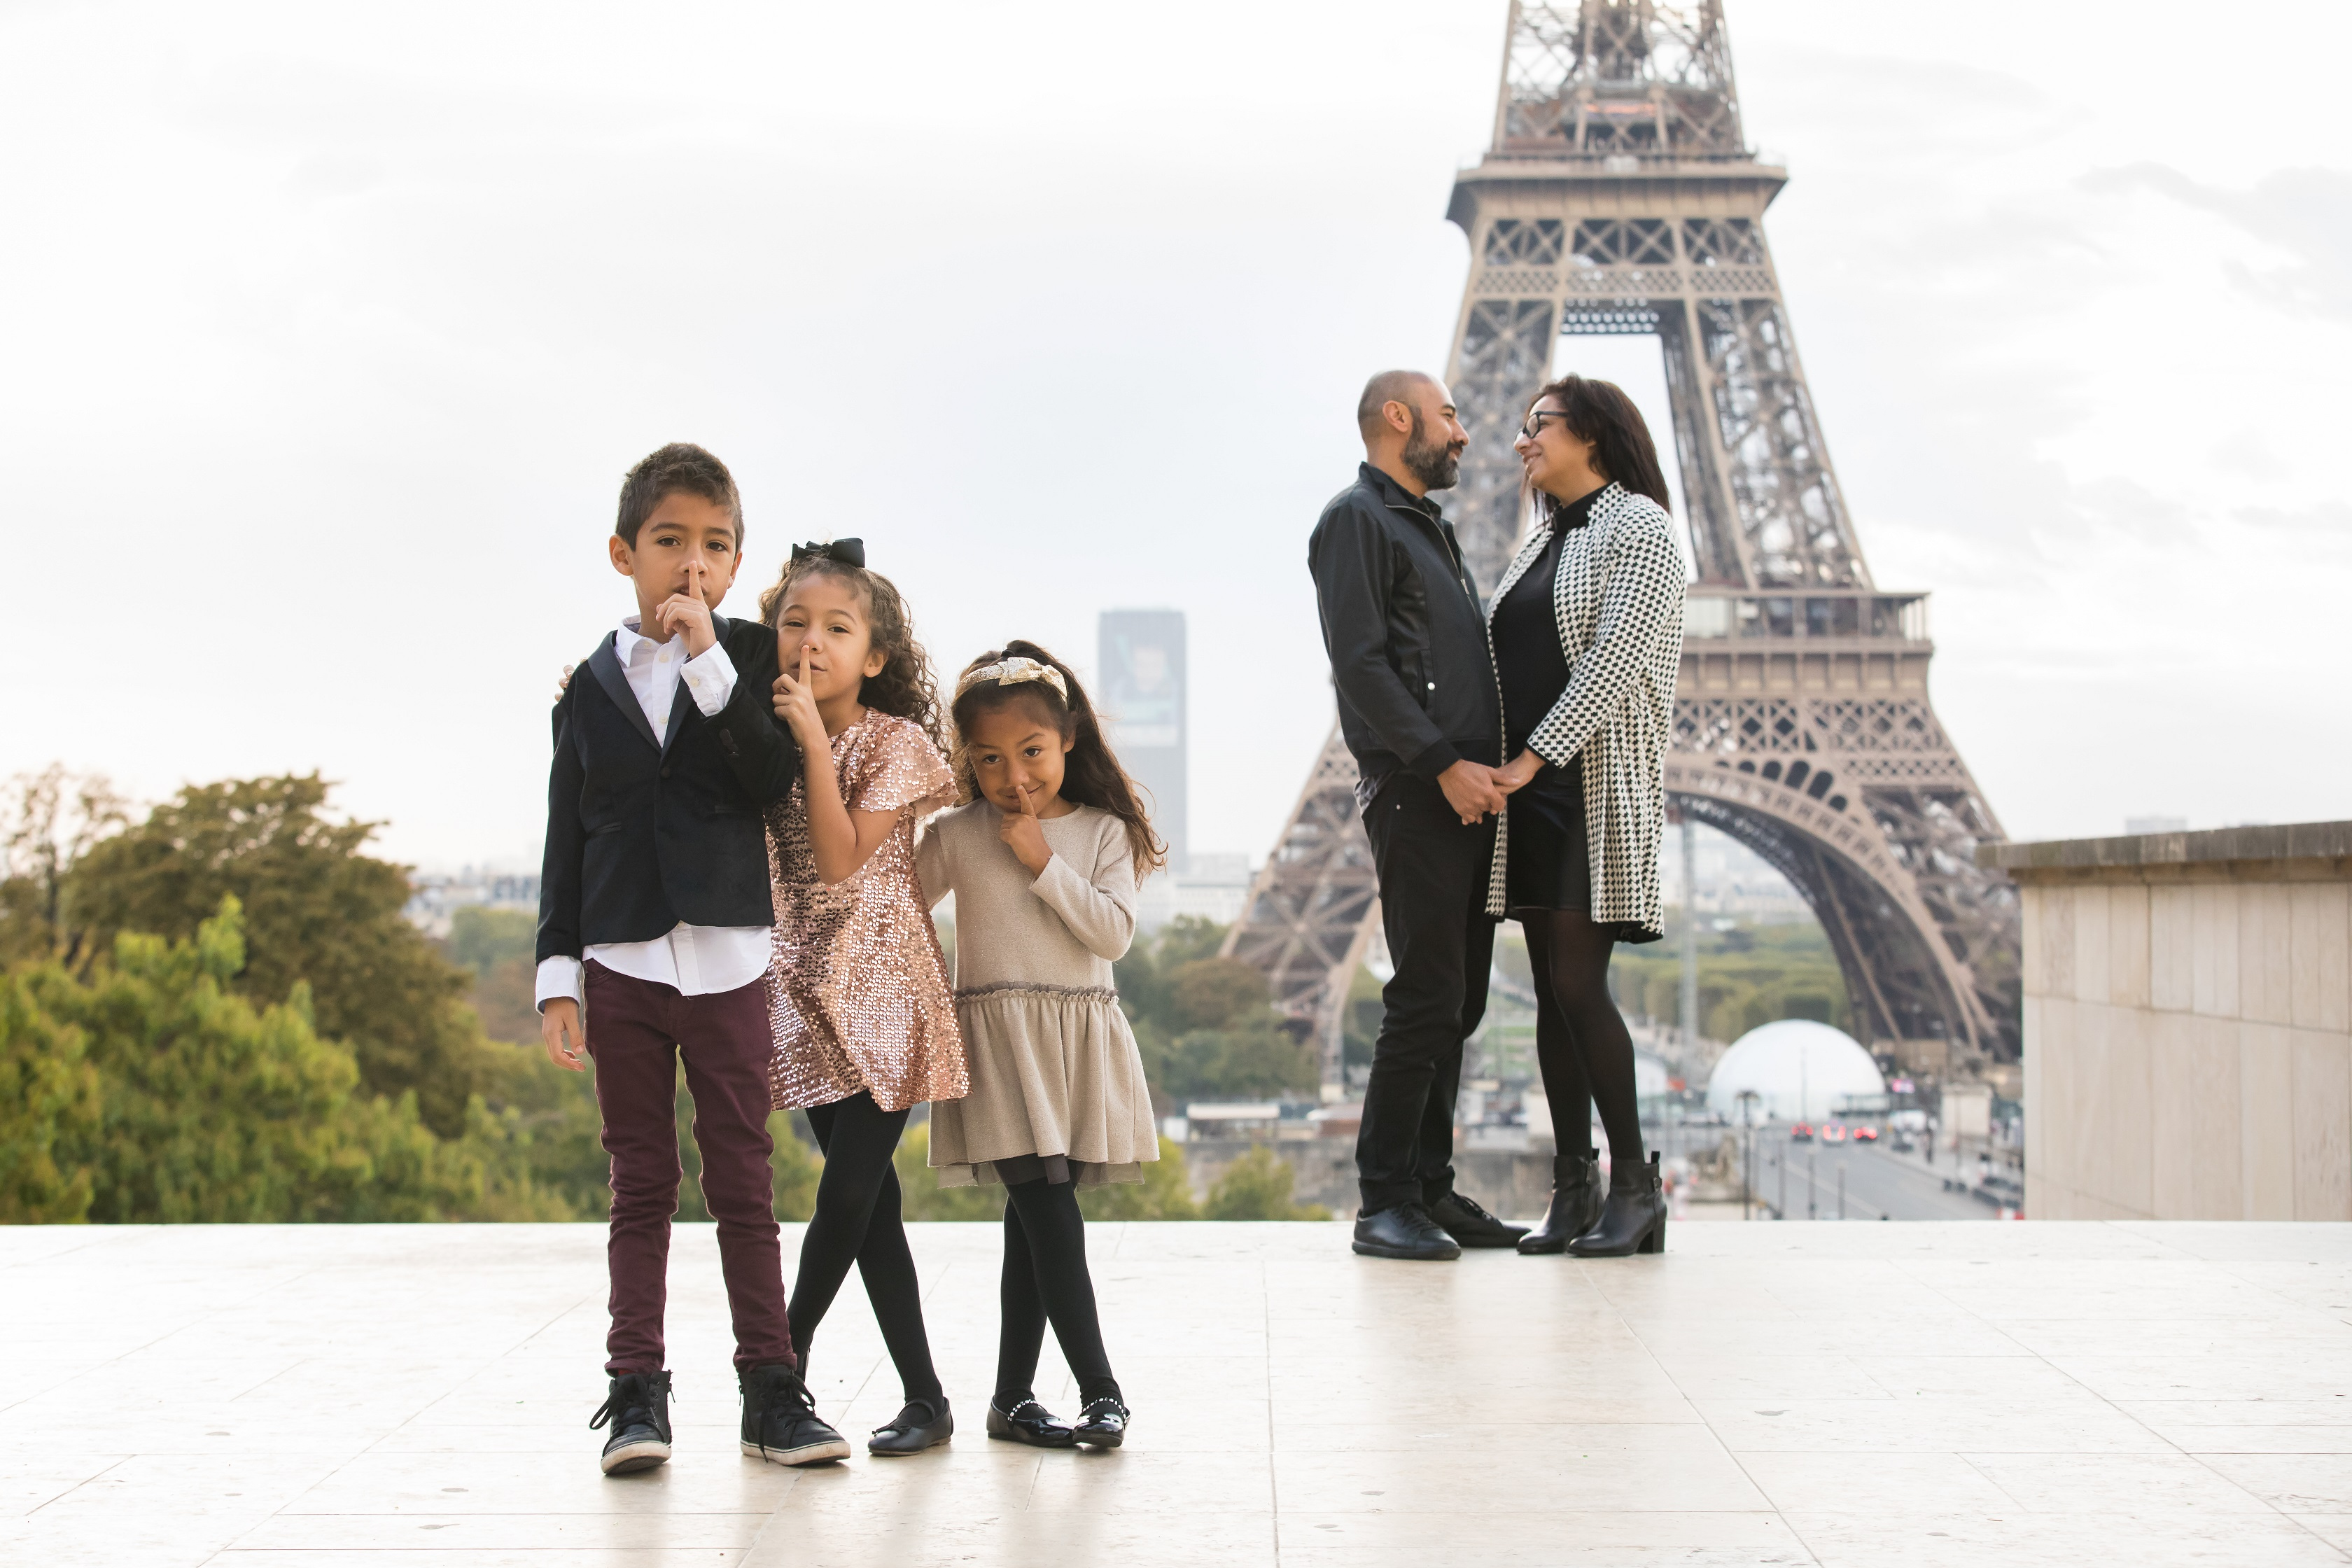 Paris family photographer Julien LB, Photoshoot - Copie